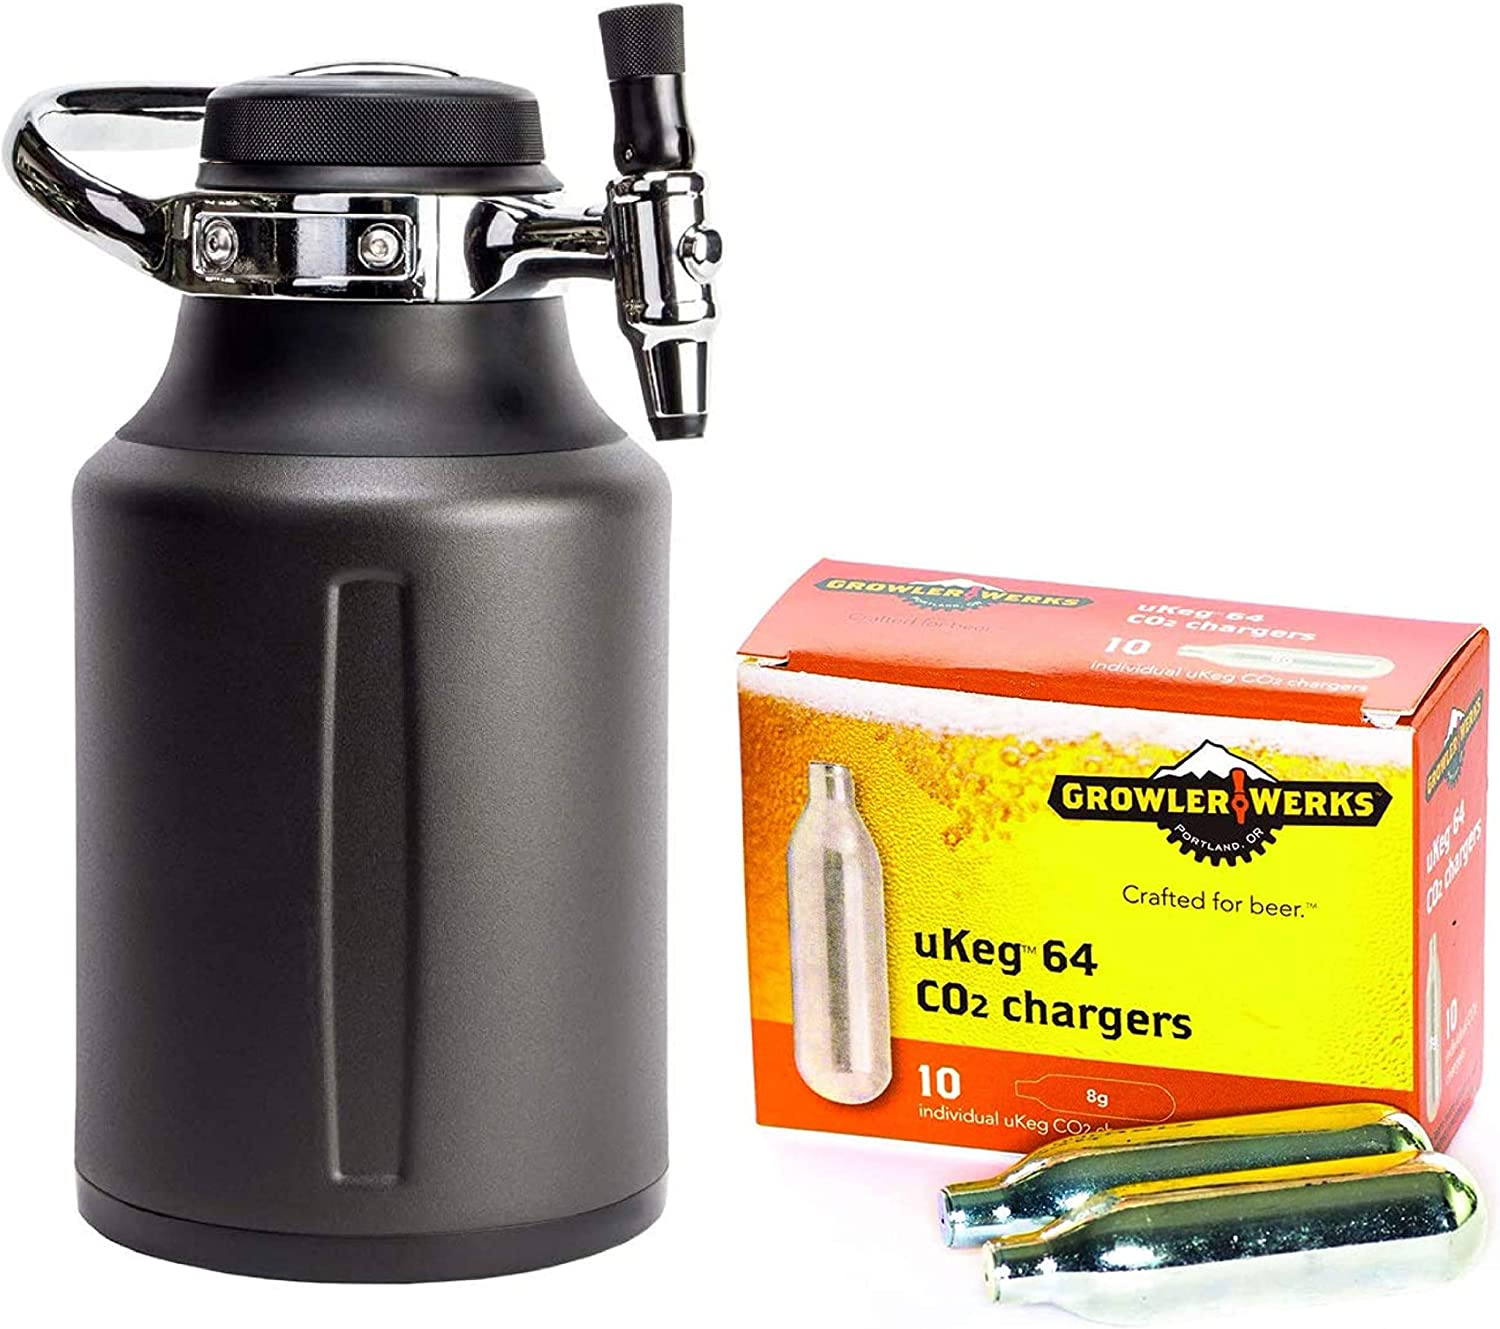 GrowlerWerks uKeg Go Carbonated Growler, 64oz, Tungsten, 10 CO2 Chargers